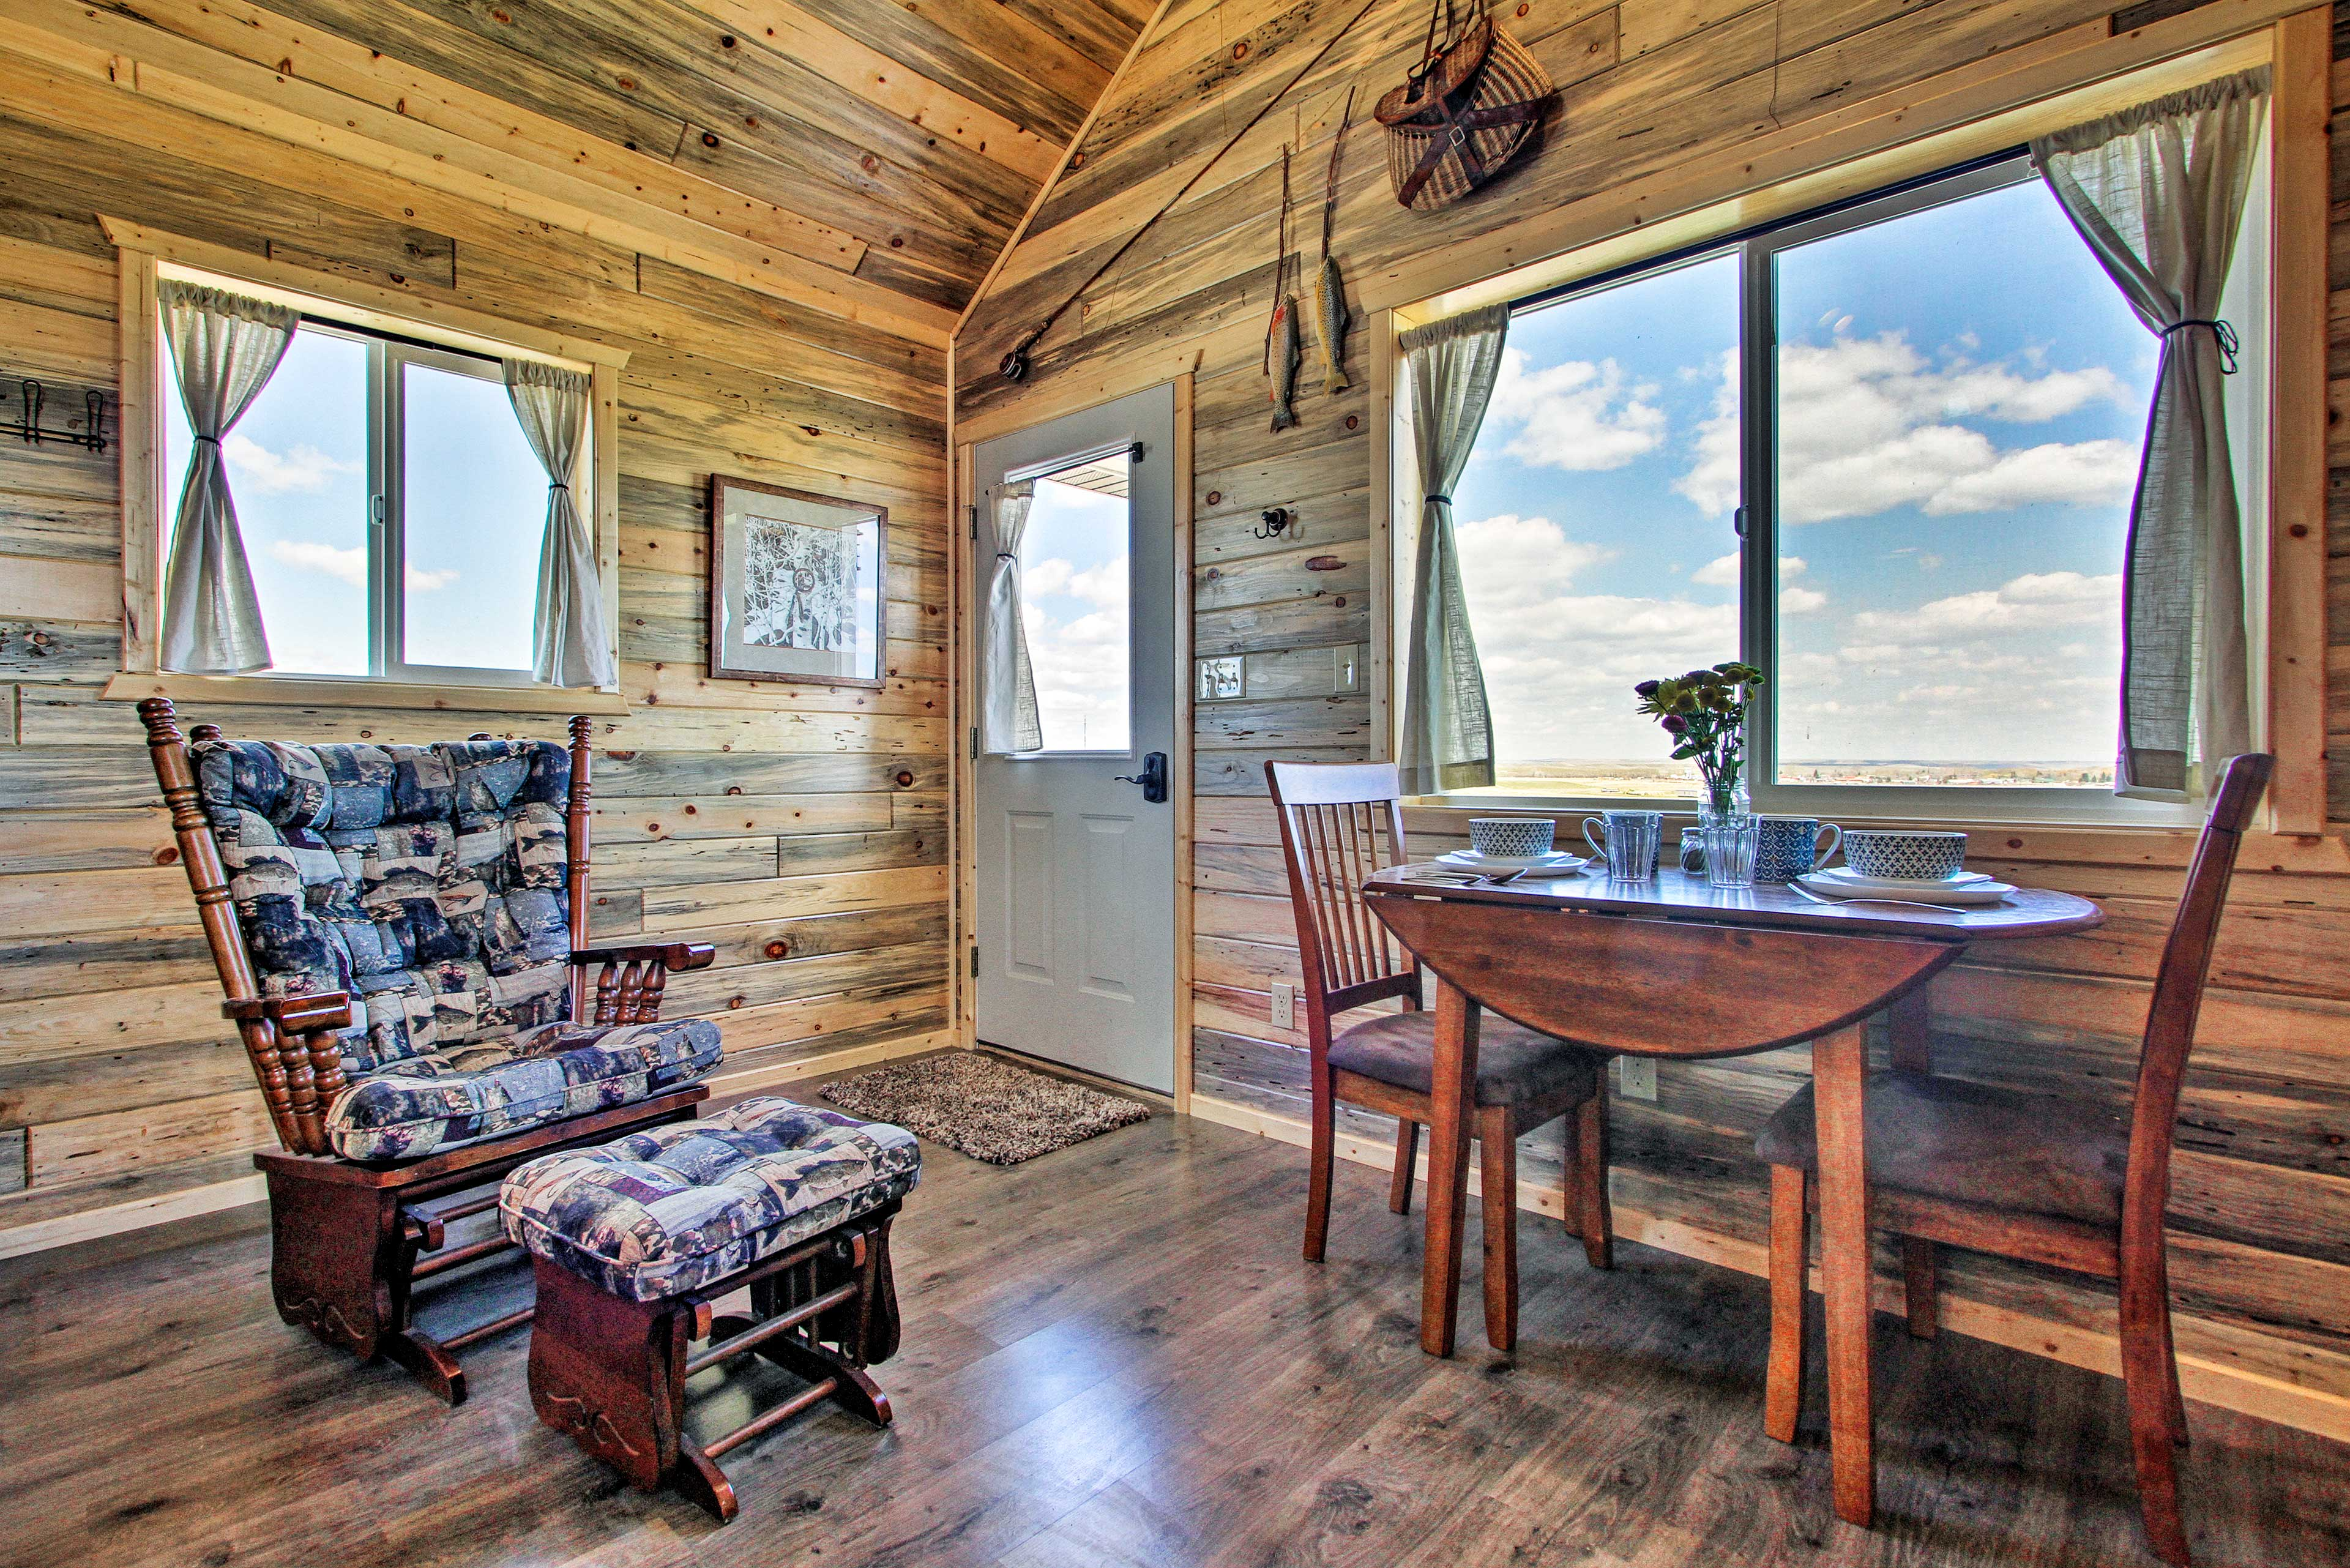 Kick back in the rocking chair and look out onto pastoral views.